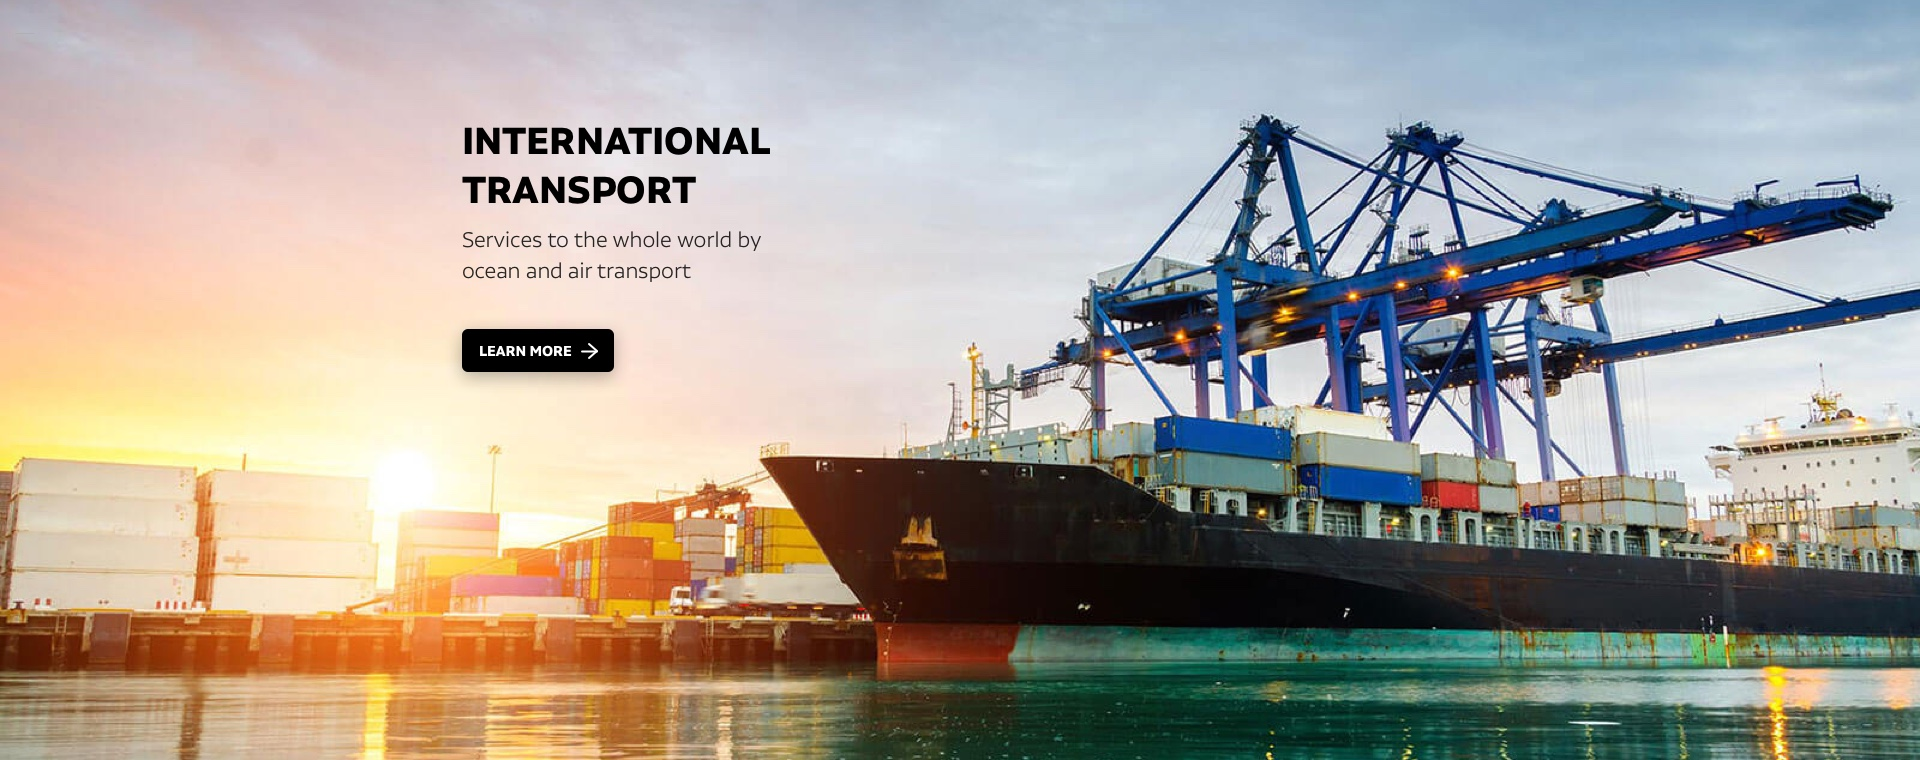 International transport: Services to the whole world by ocean and air transport